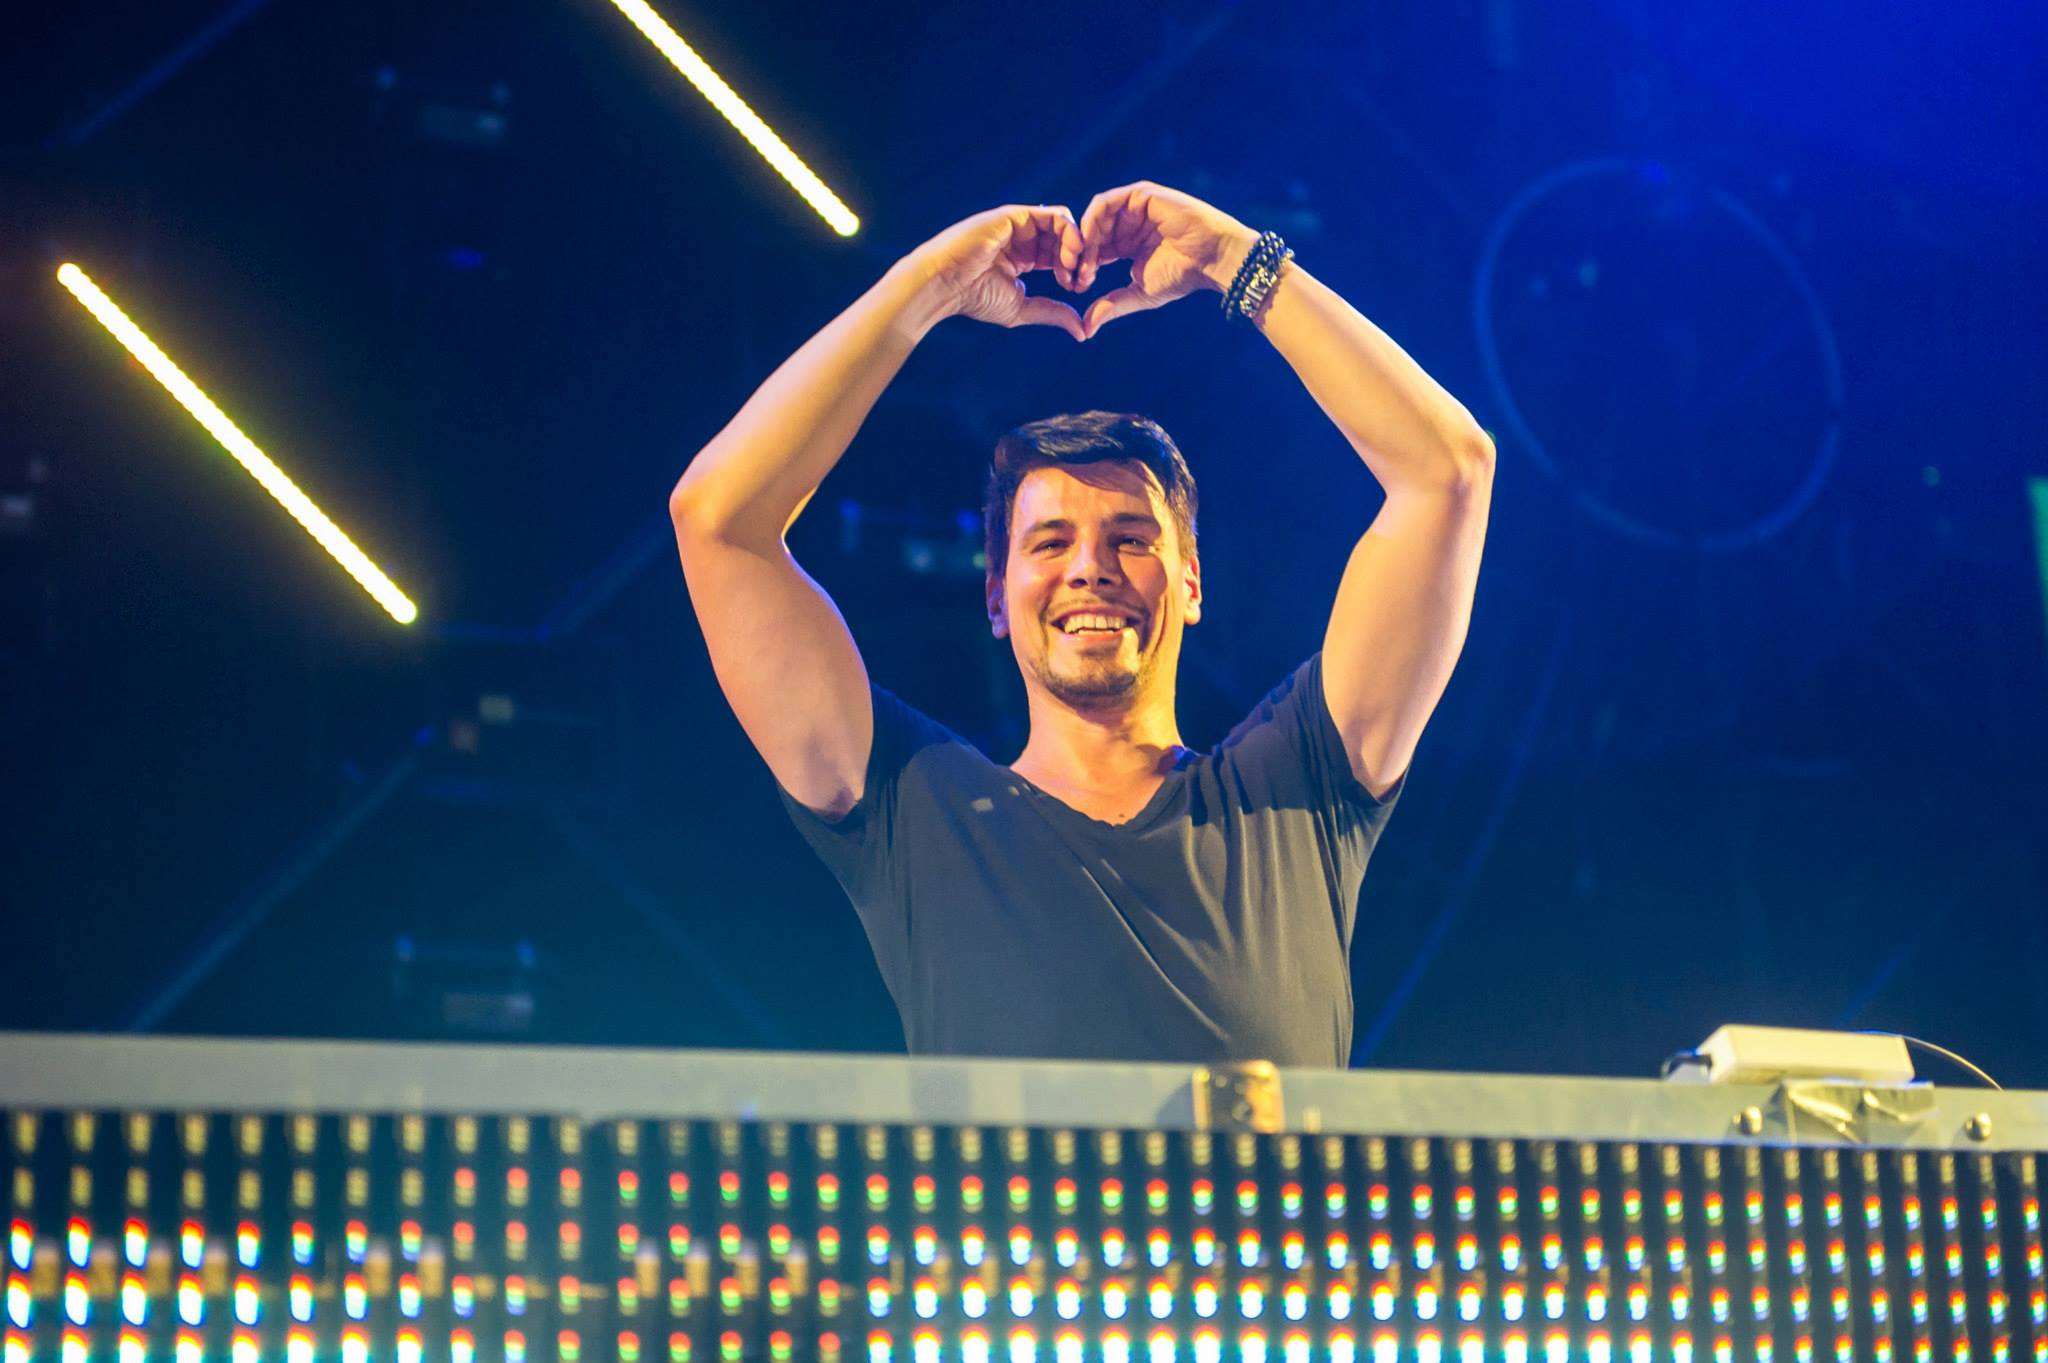 THOMAS GOLD AT EXCHANGE 12/26